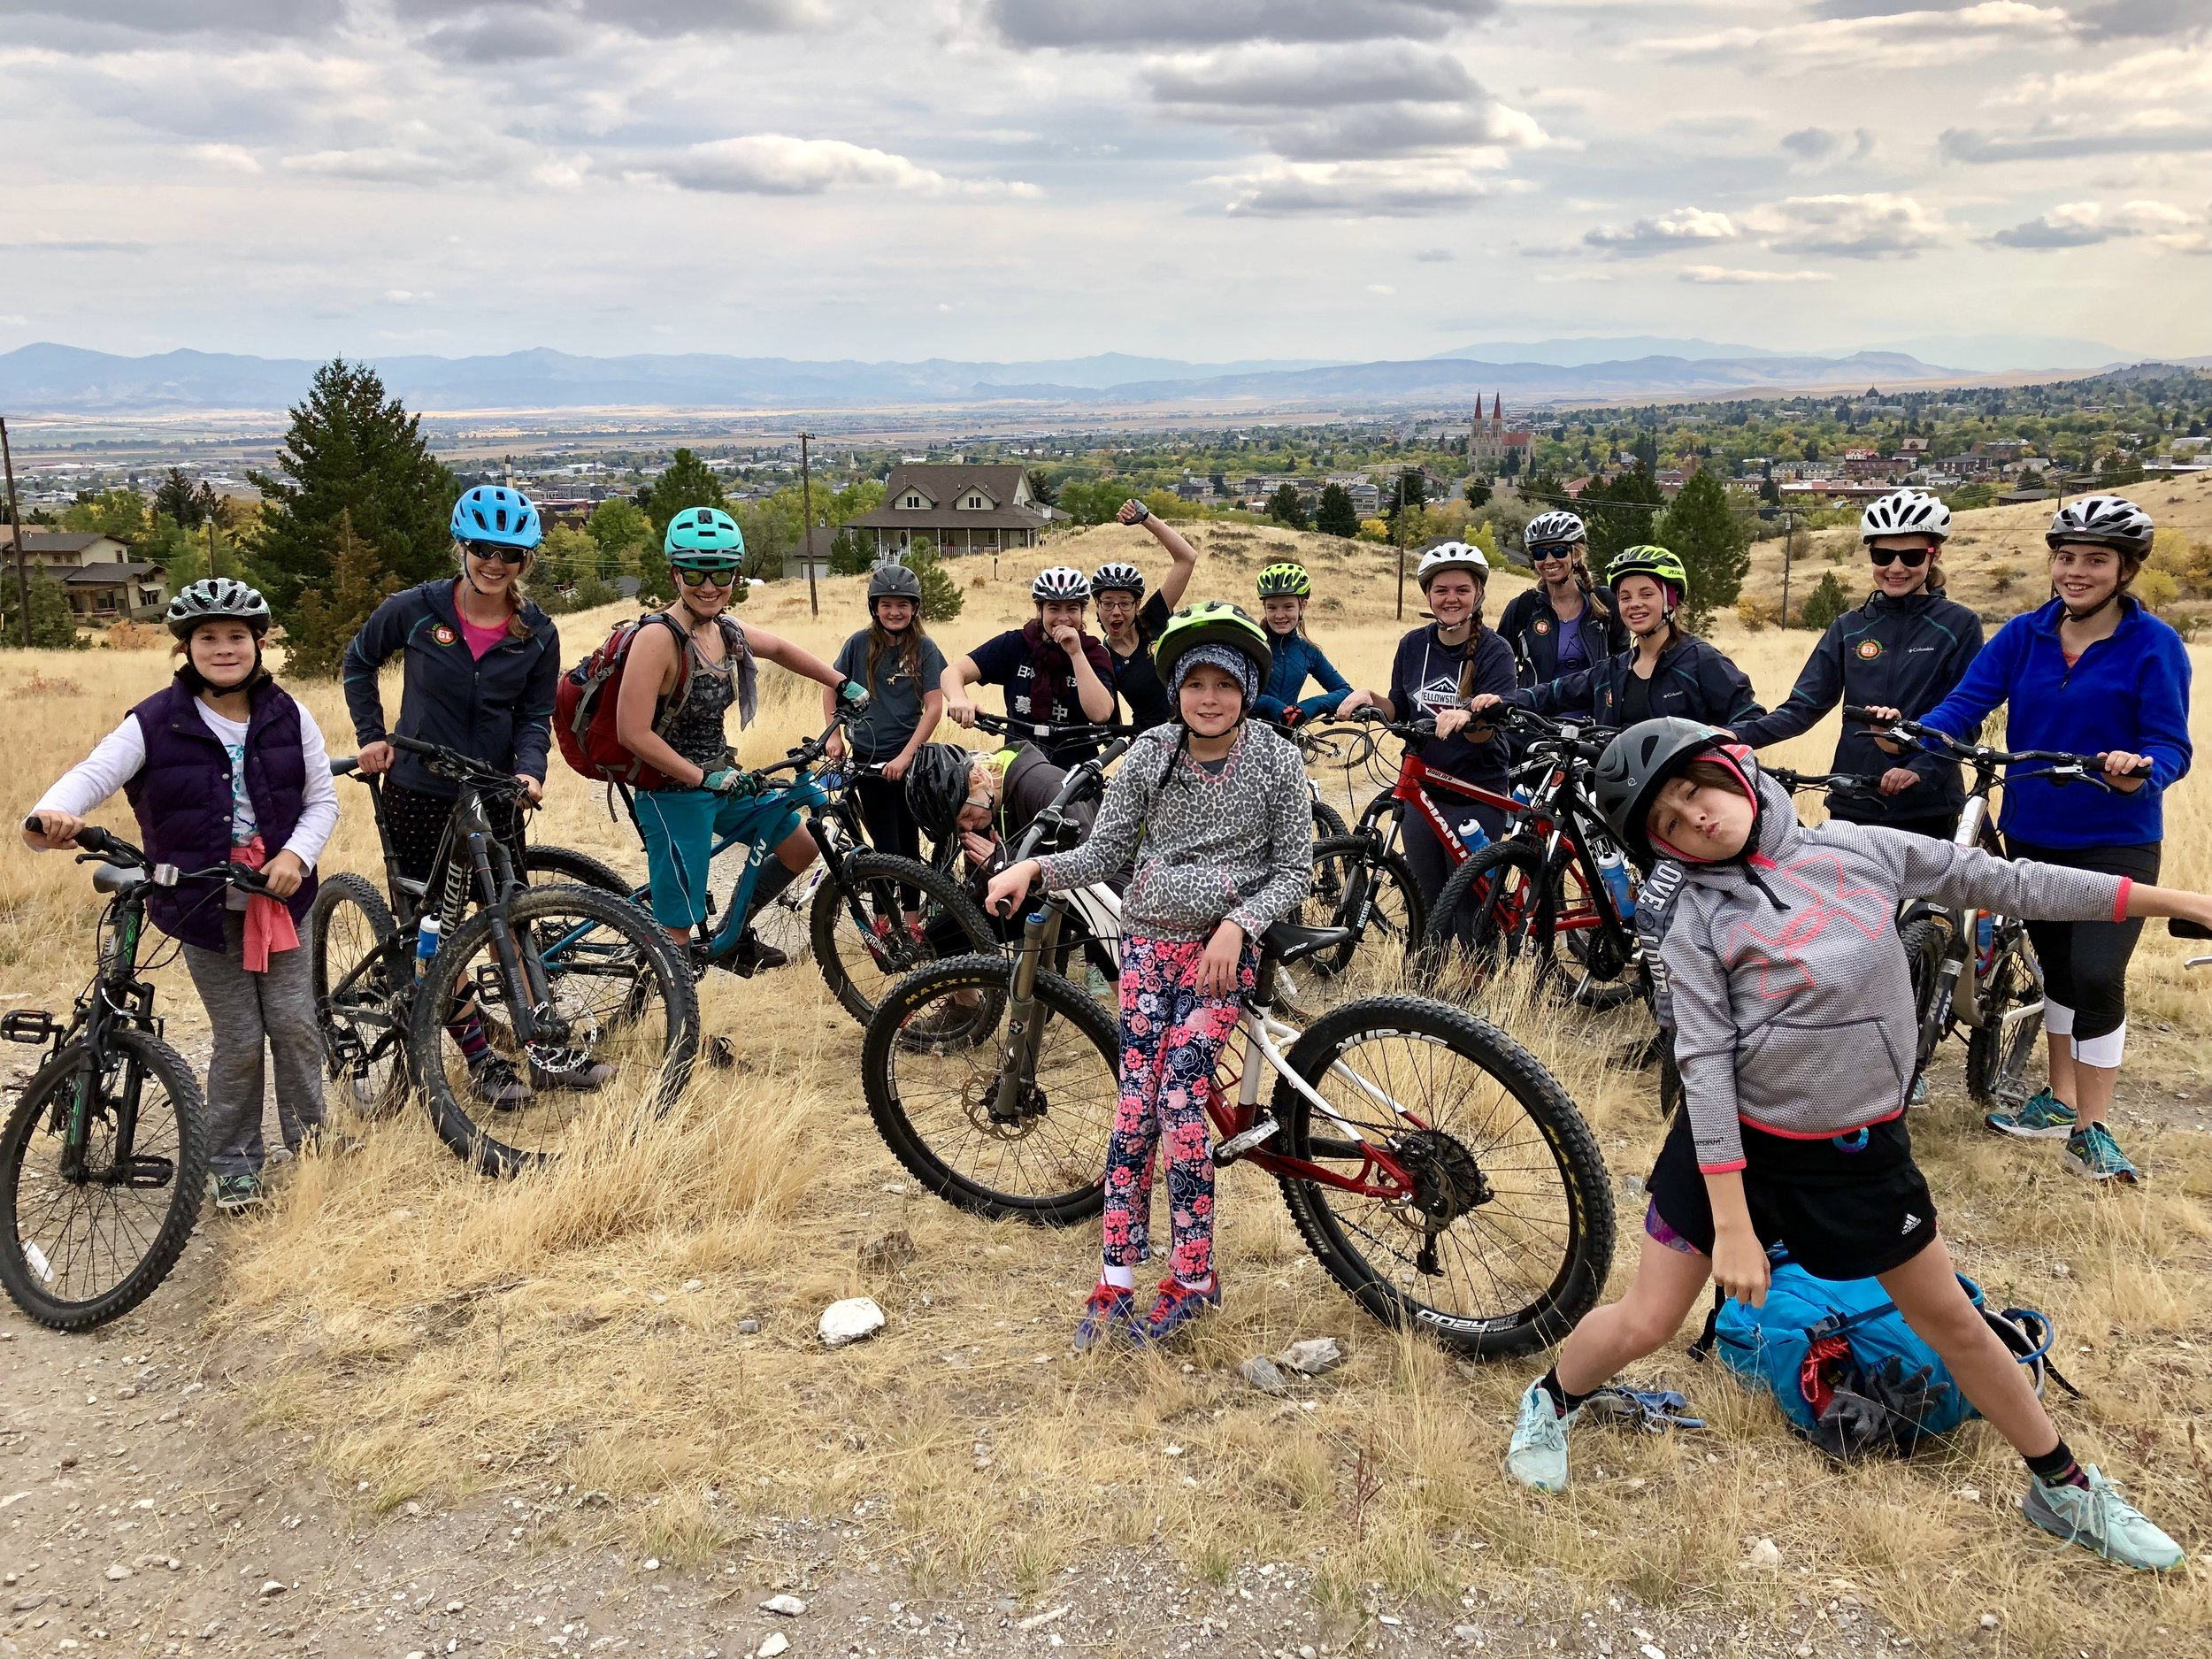 Getting ready for mountain bike practice on Mt. Helena.